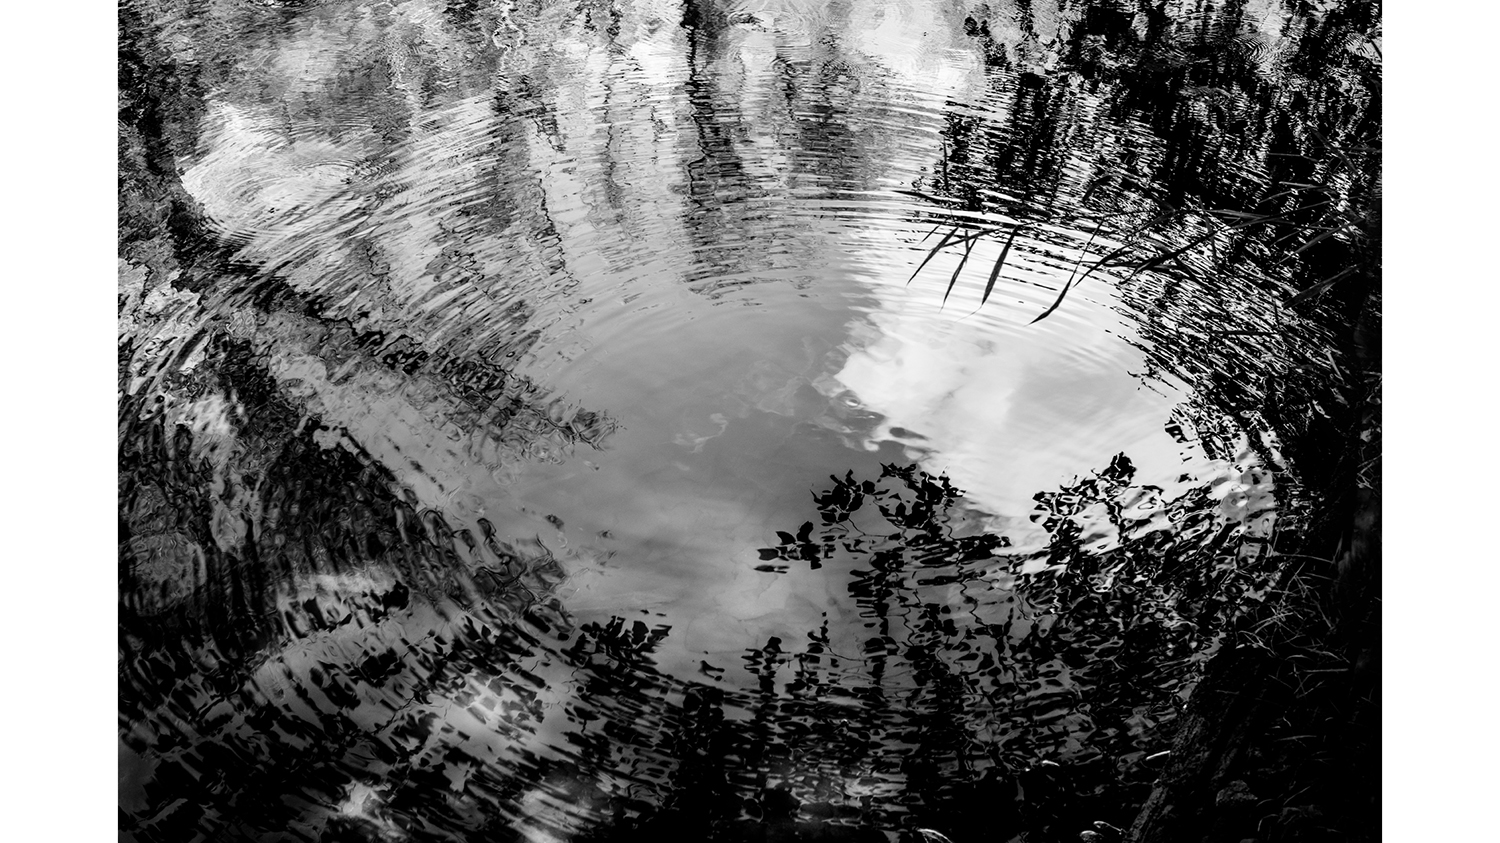 A black and white photo of trees reflecting in water